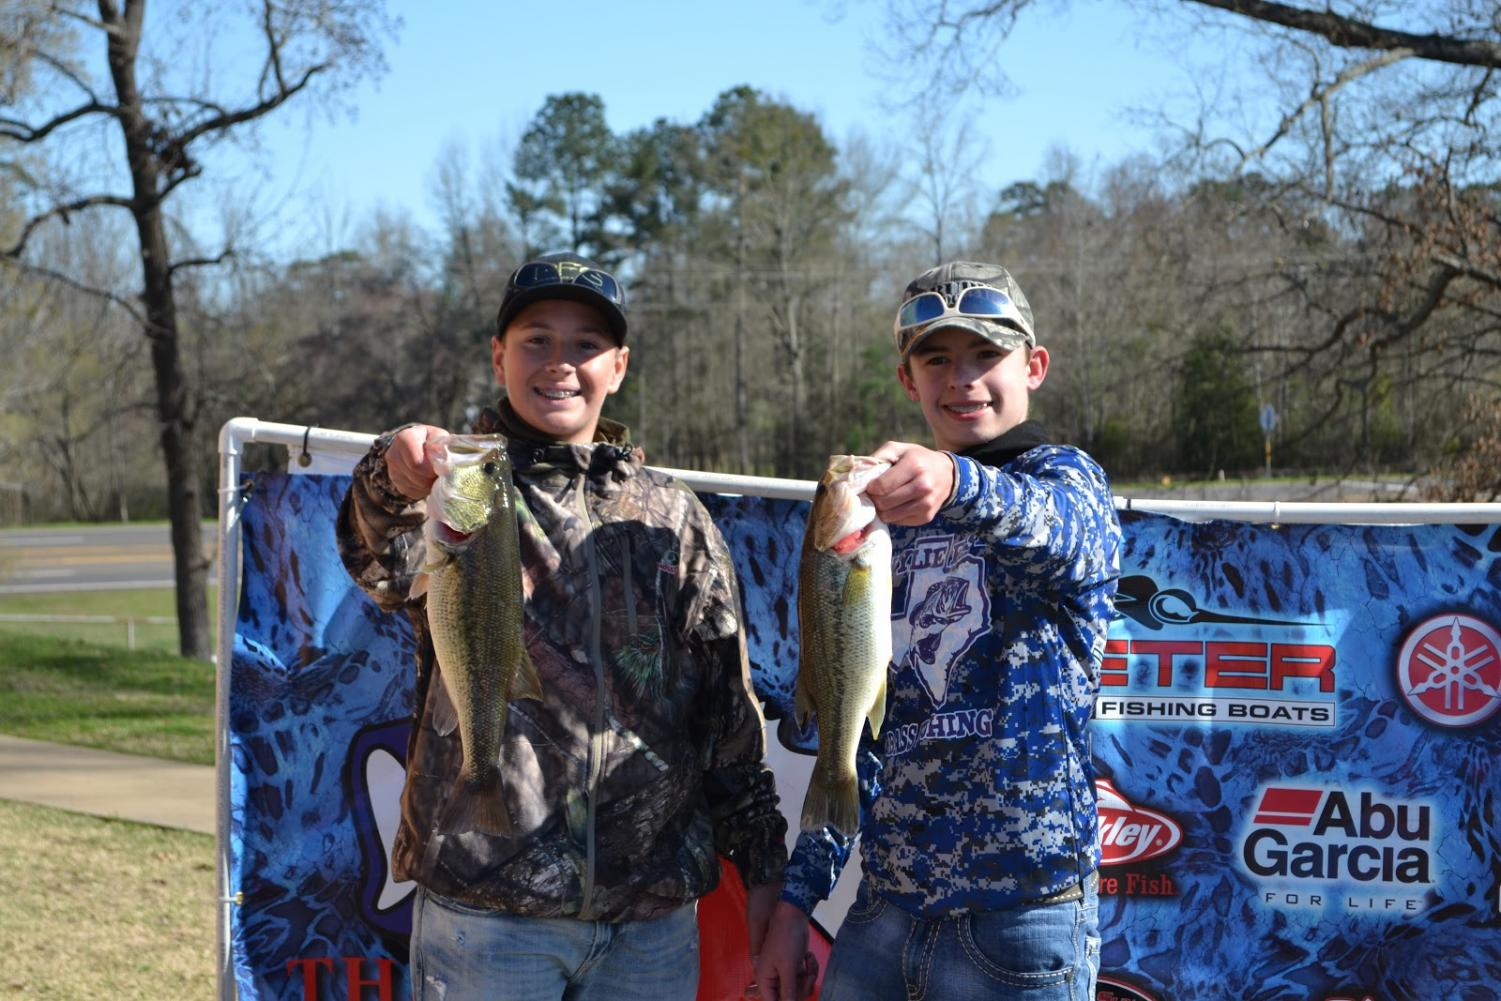 Pounds count // After waking early and spending the morning competing in the bass fishing tournament as a two-person team, sophomore Christian Conley and freshman J.T. Henry weighed in their fish at a competition Feb. 25 with a weight of 5.61 pounds. Photo by Ashley Henagin